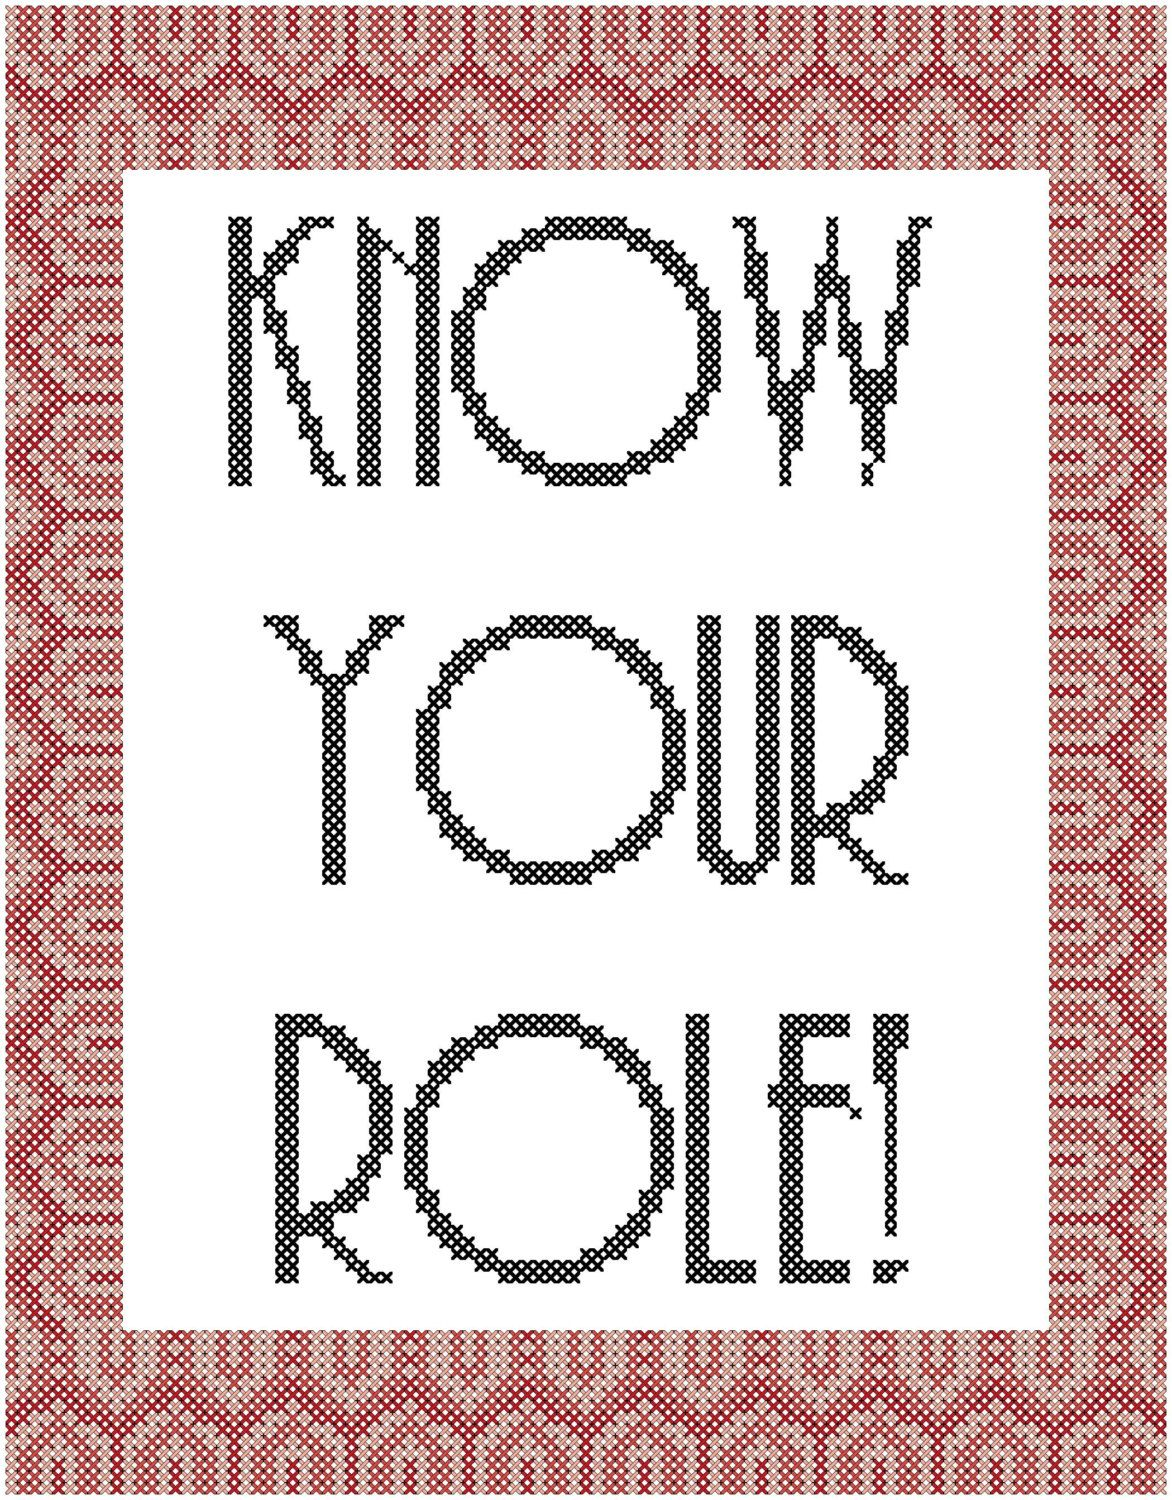 Subversive cross stitch patternknow your role cross stitch pattern